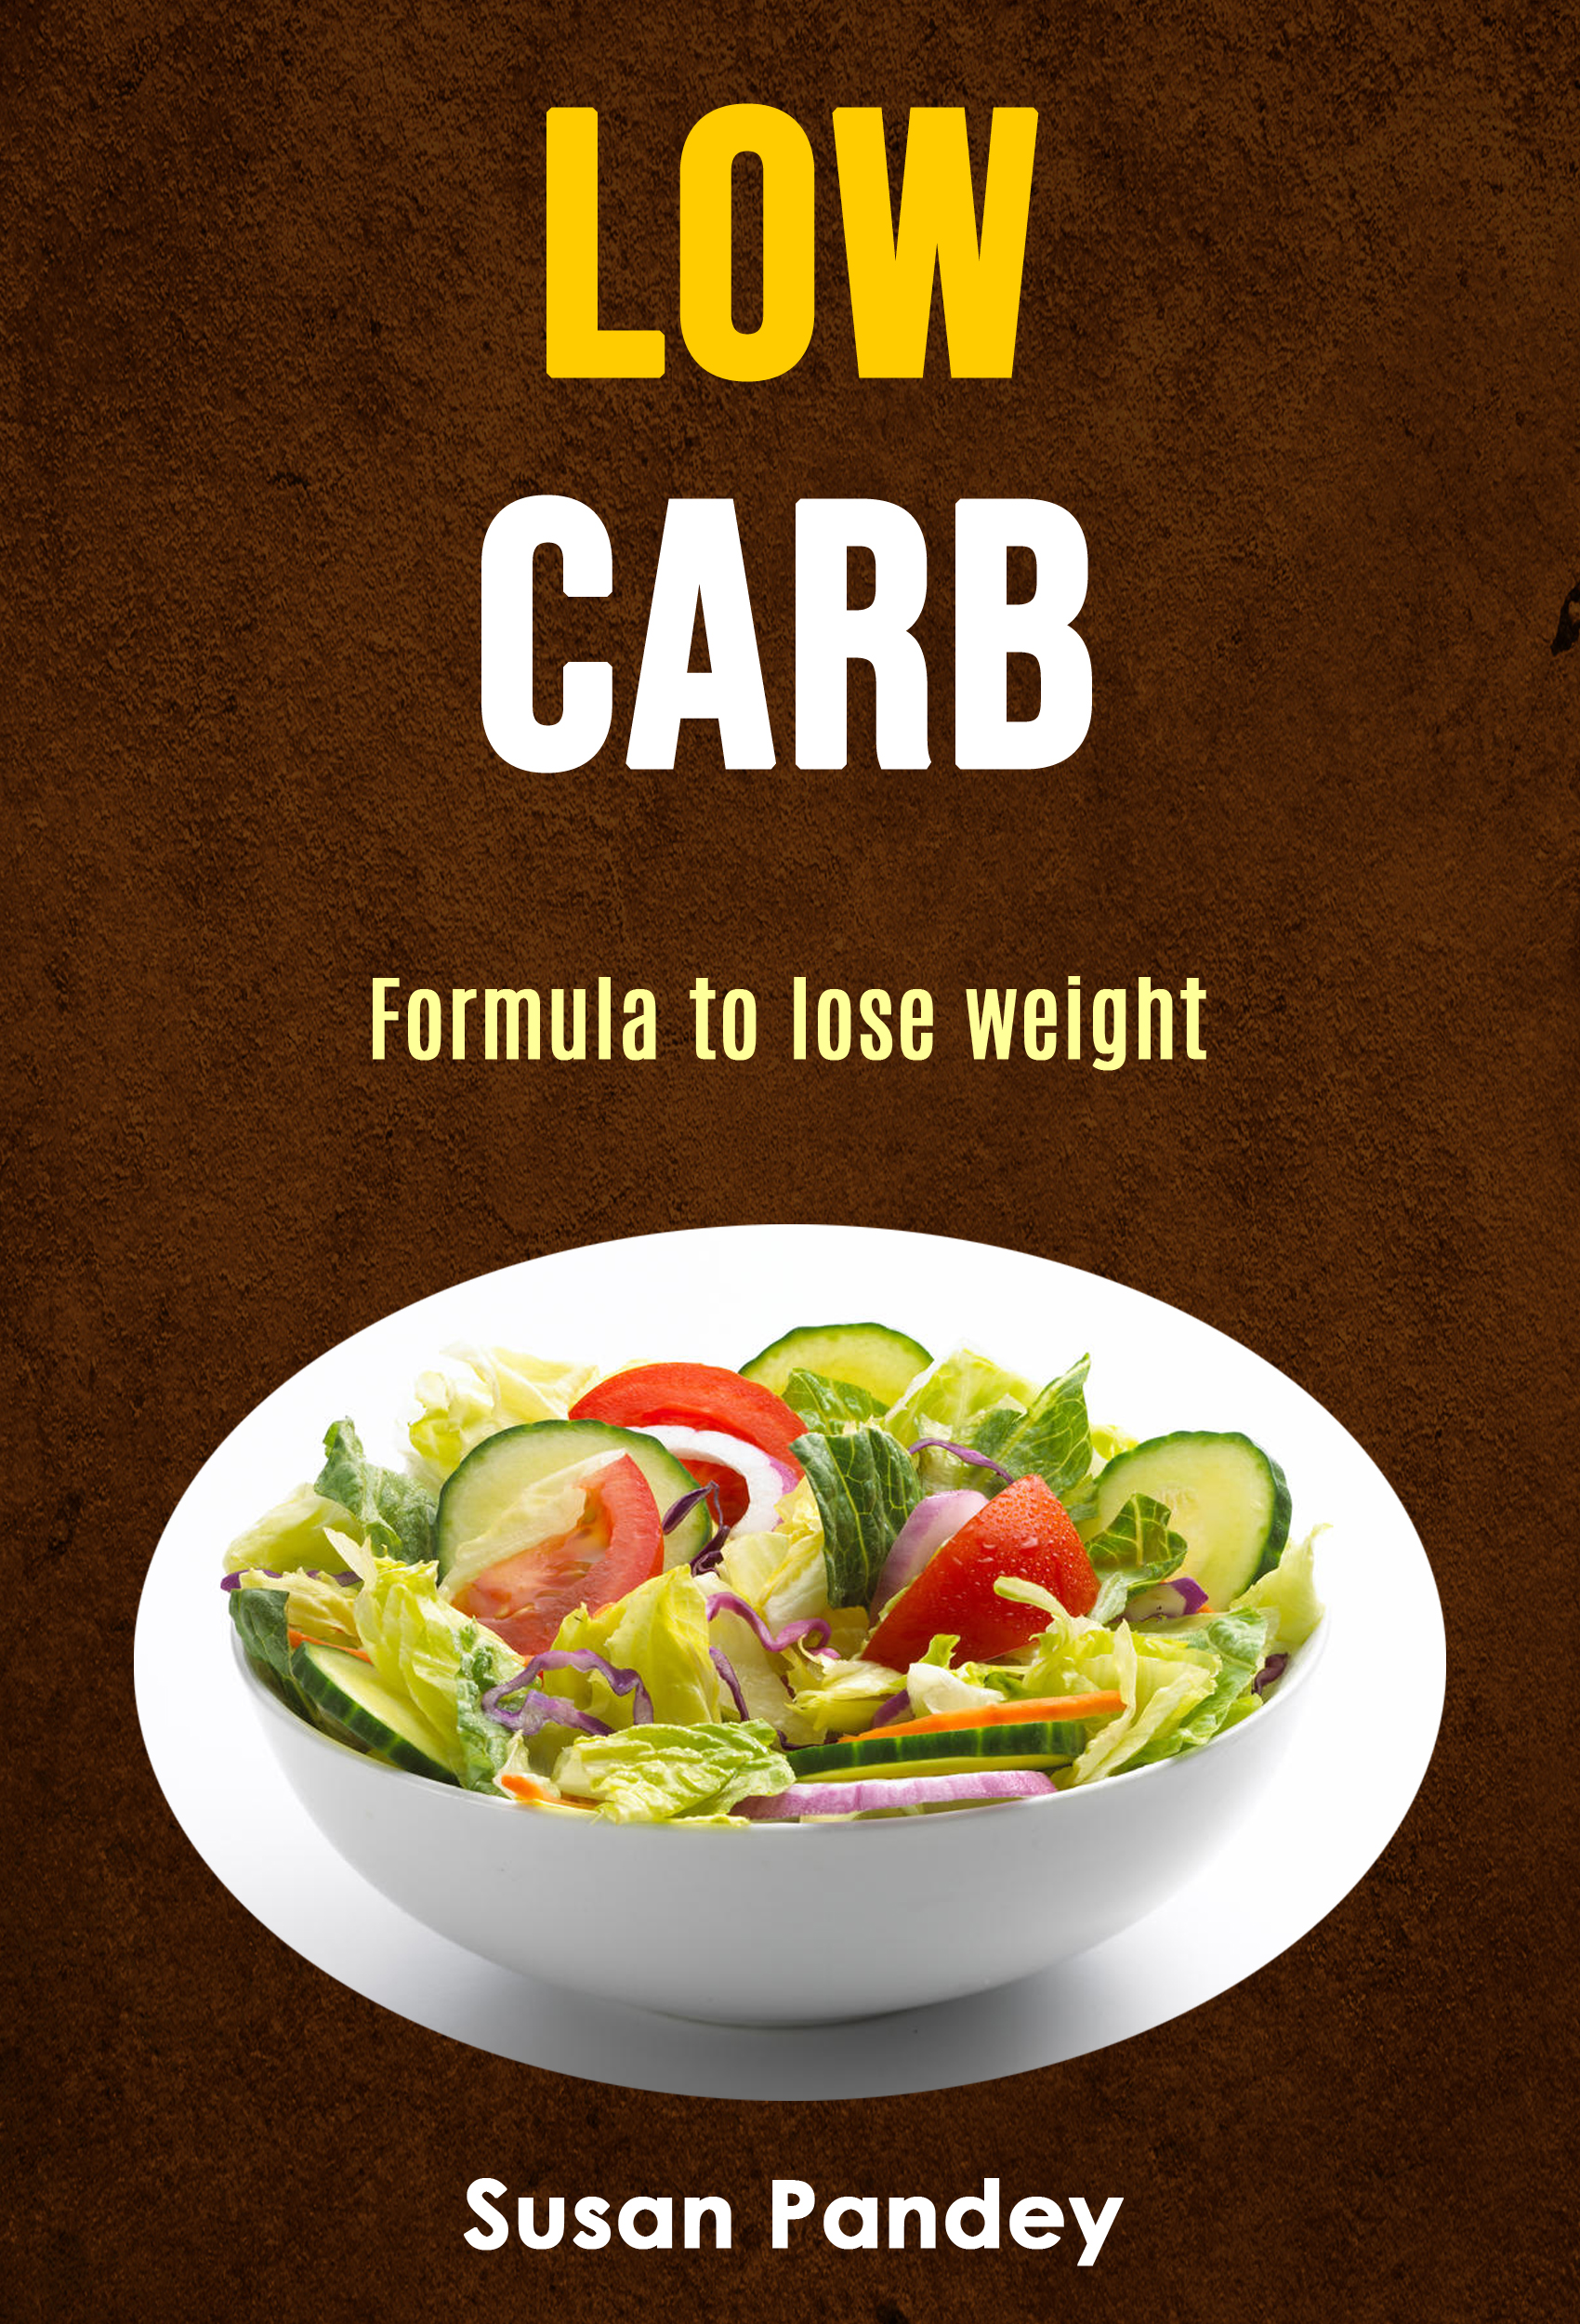 Low carb: formula to lose weight